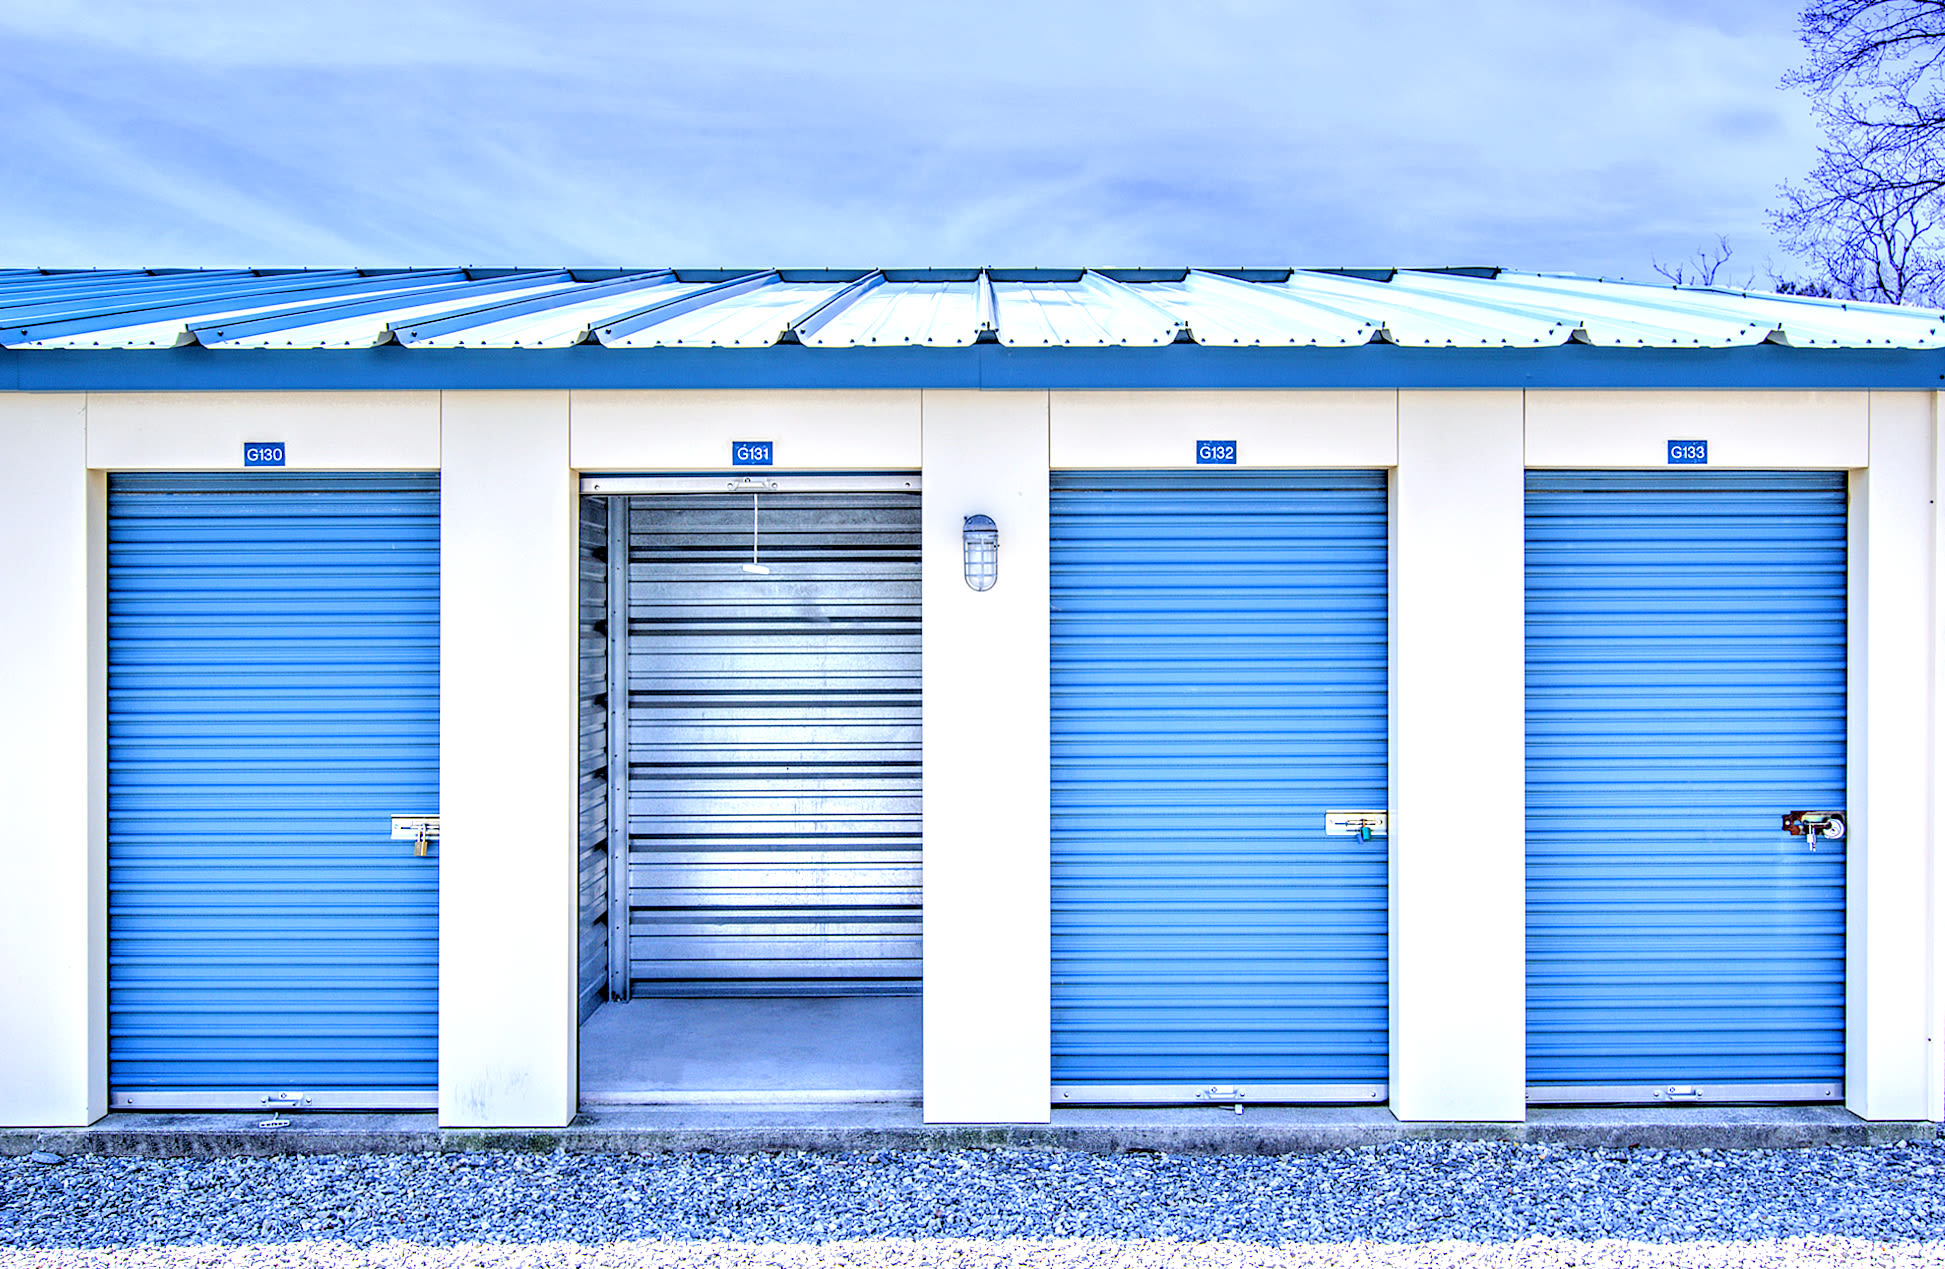 Outdoor storage units at A Safe Keeping Self Storage in Cape May Court House, New Jersey